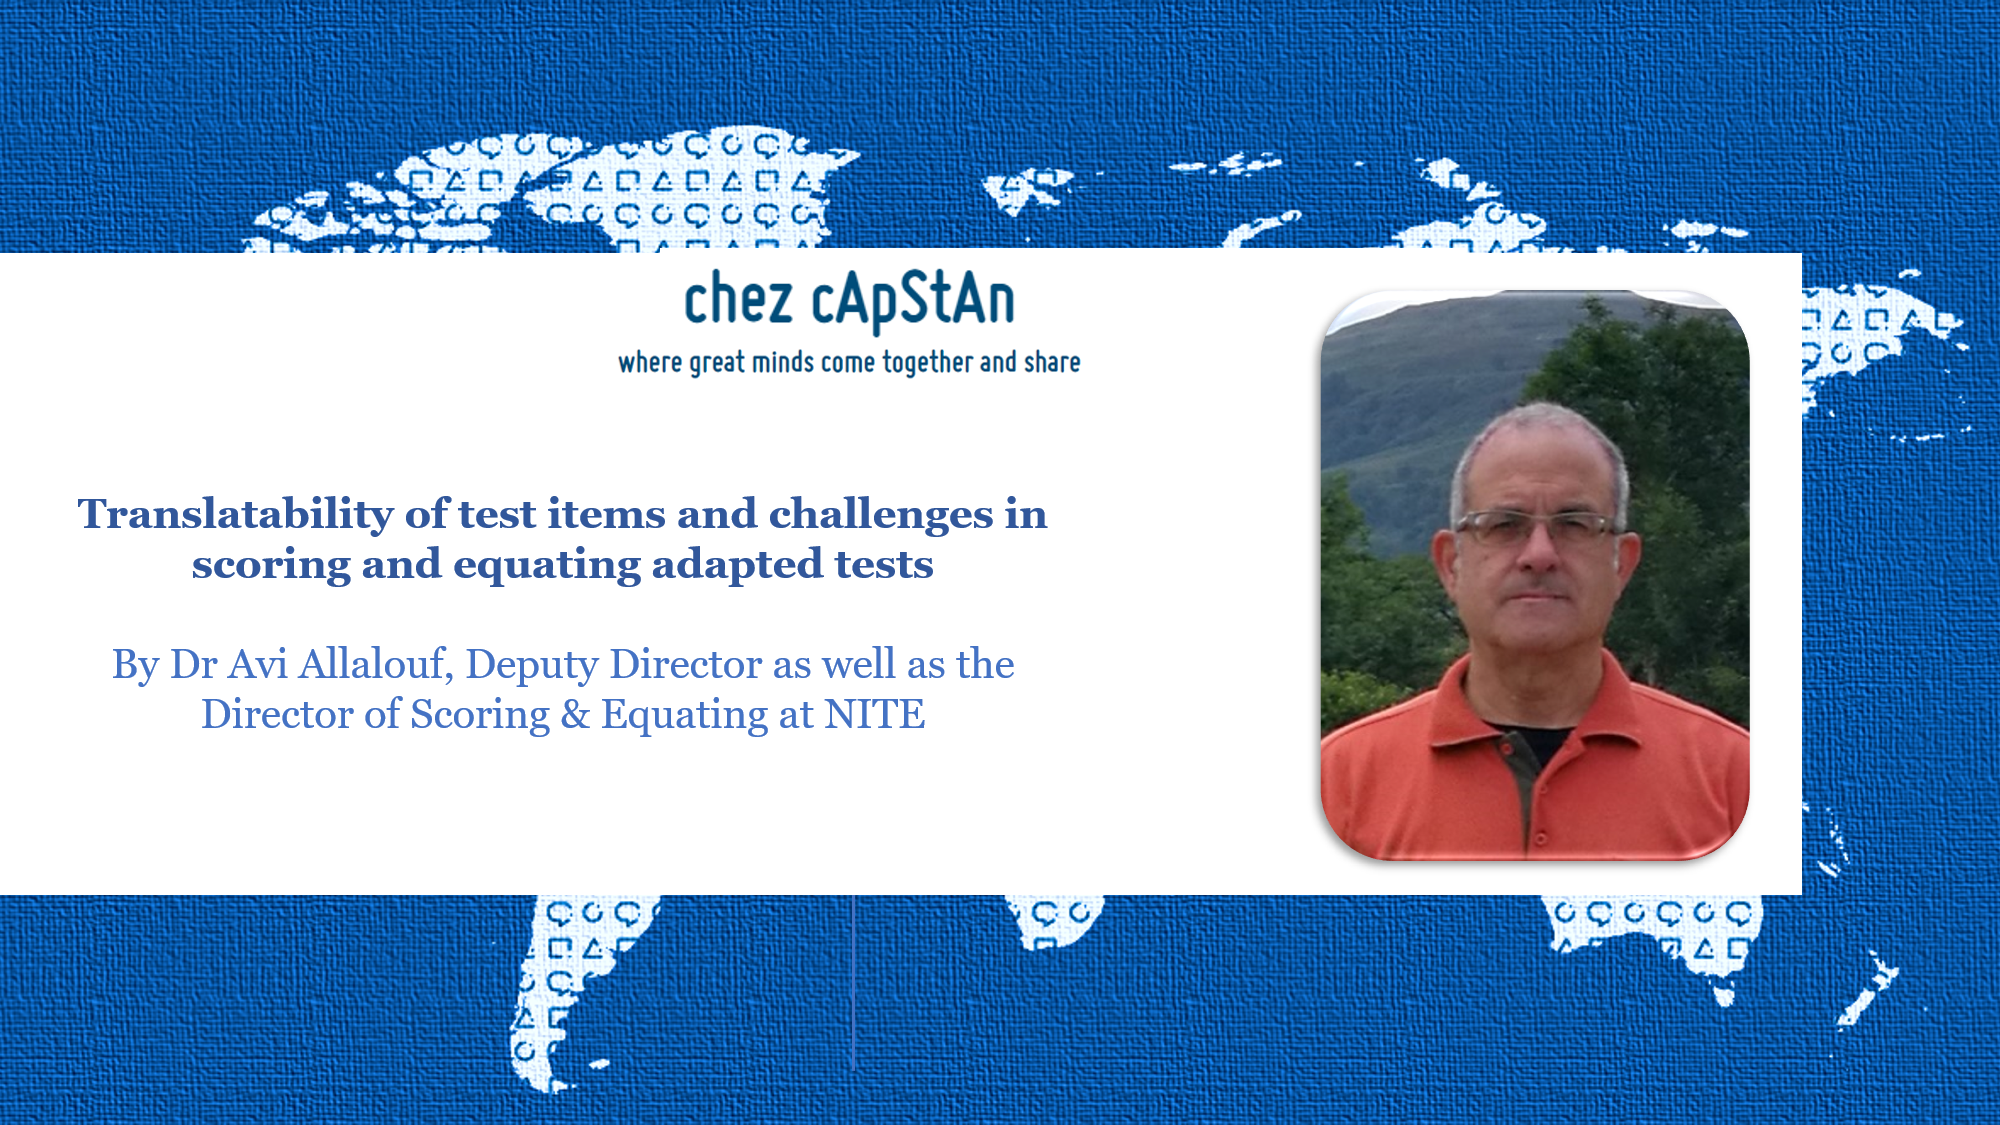 Translatability of test items and challenges in scoring and equating adapted tests